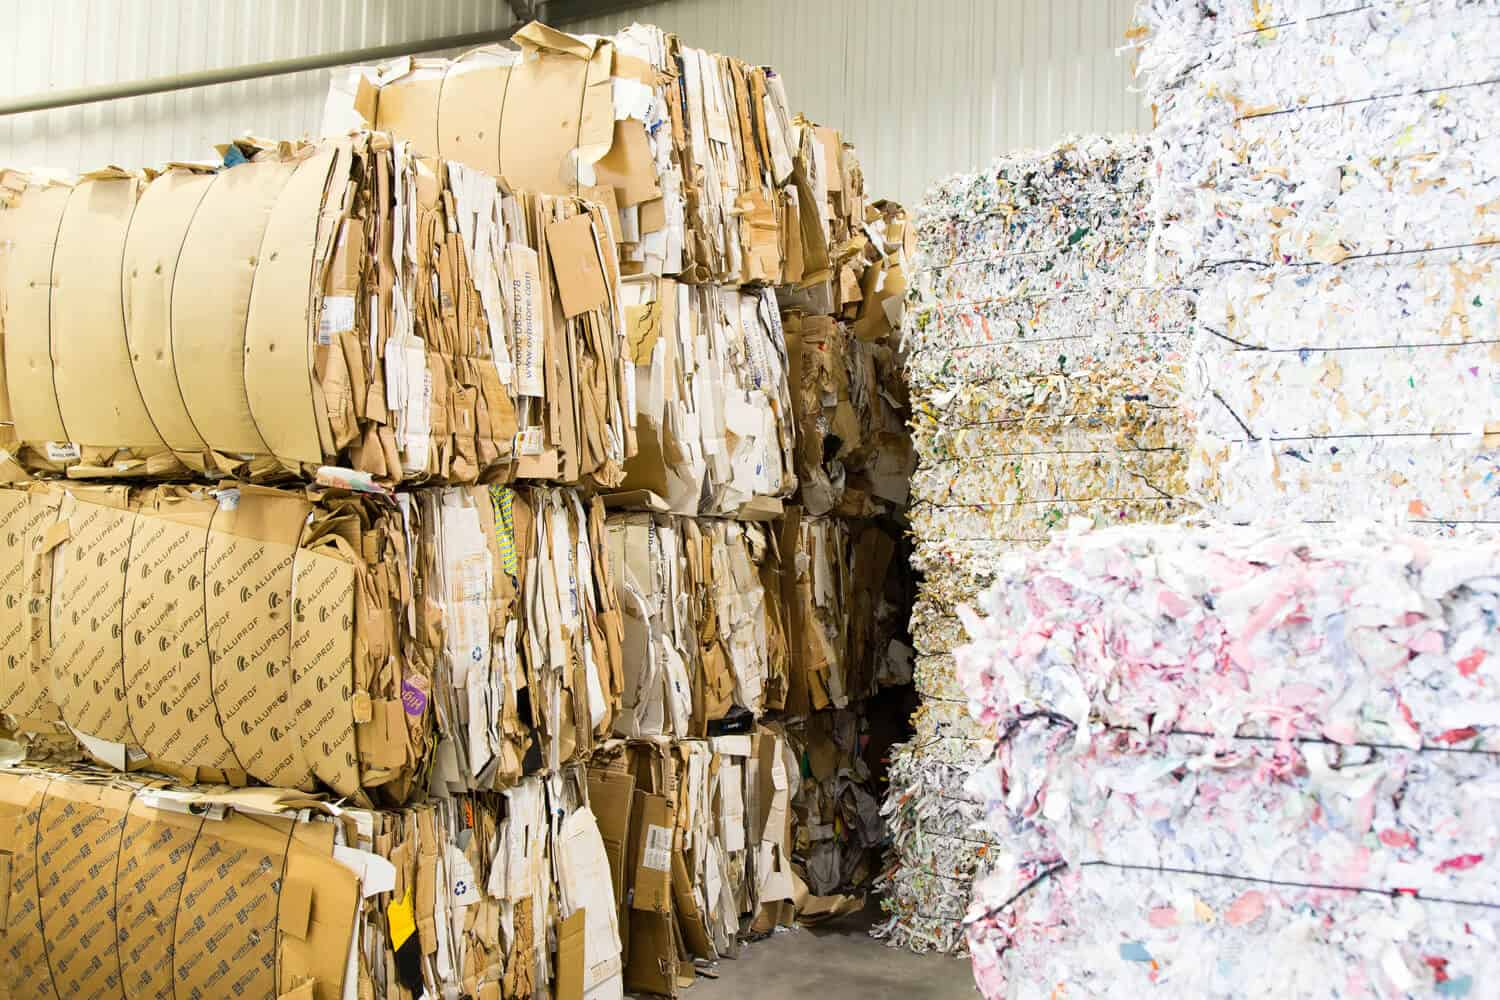 cardboard and paper stacked in bales